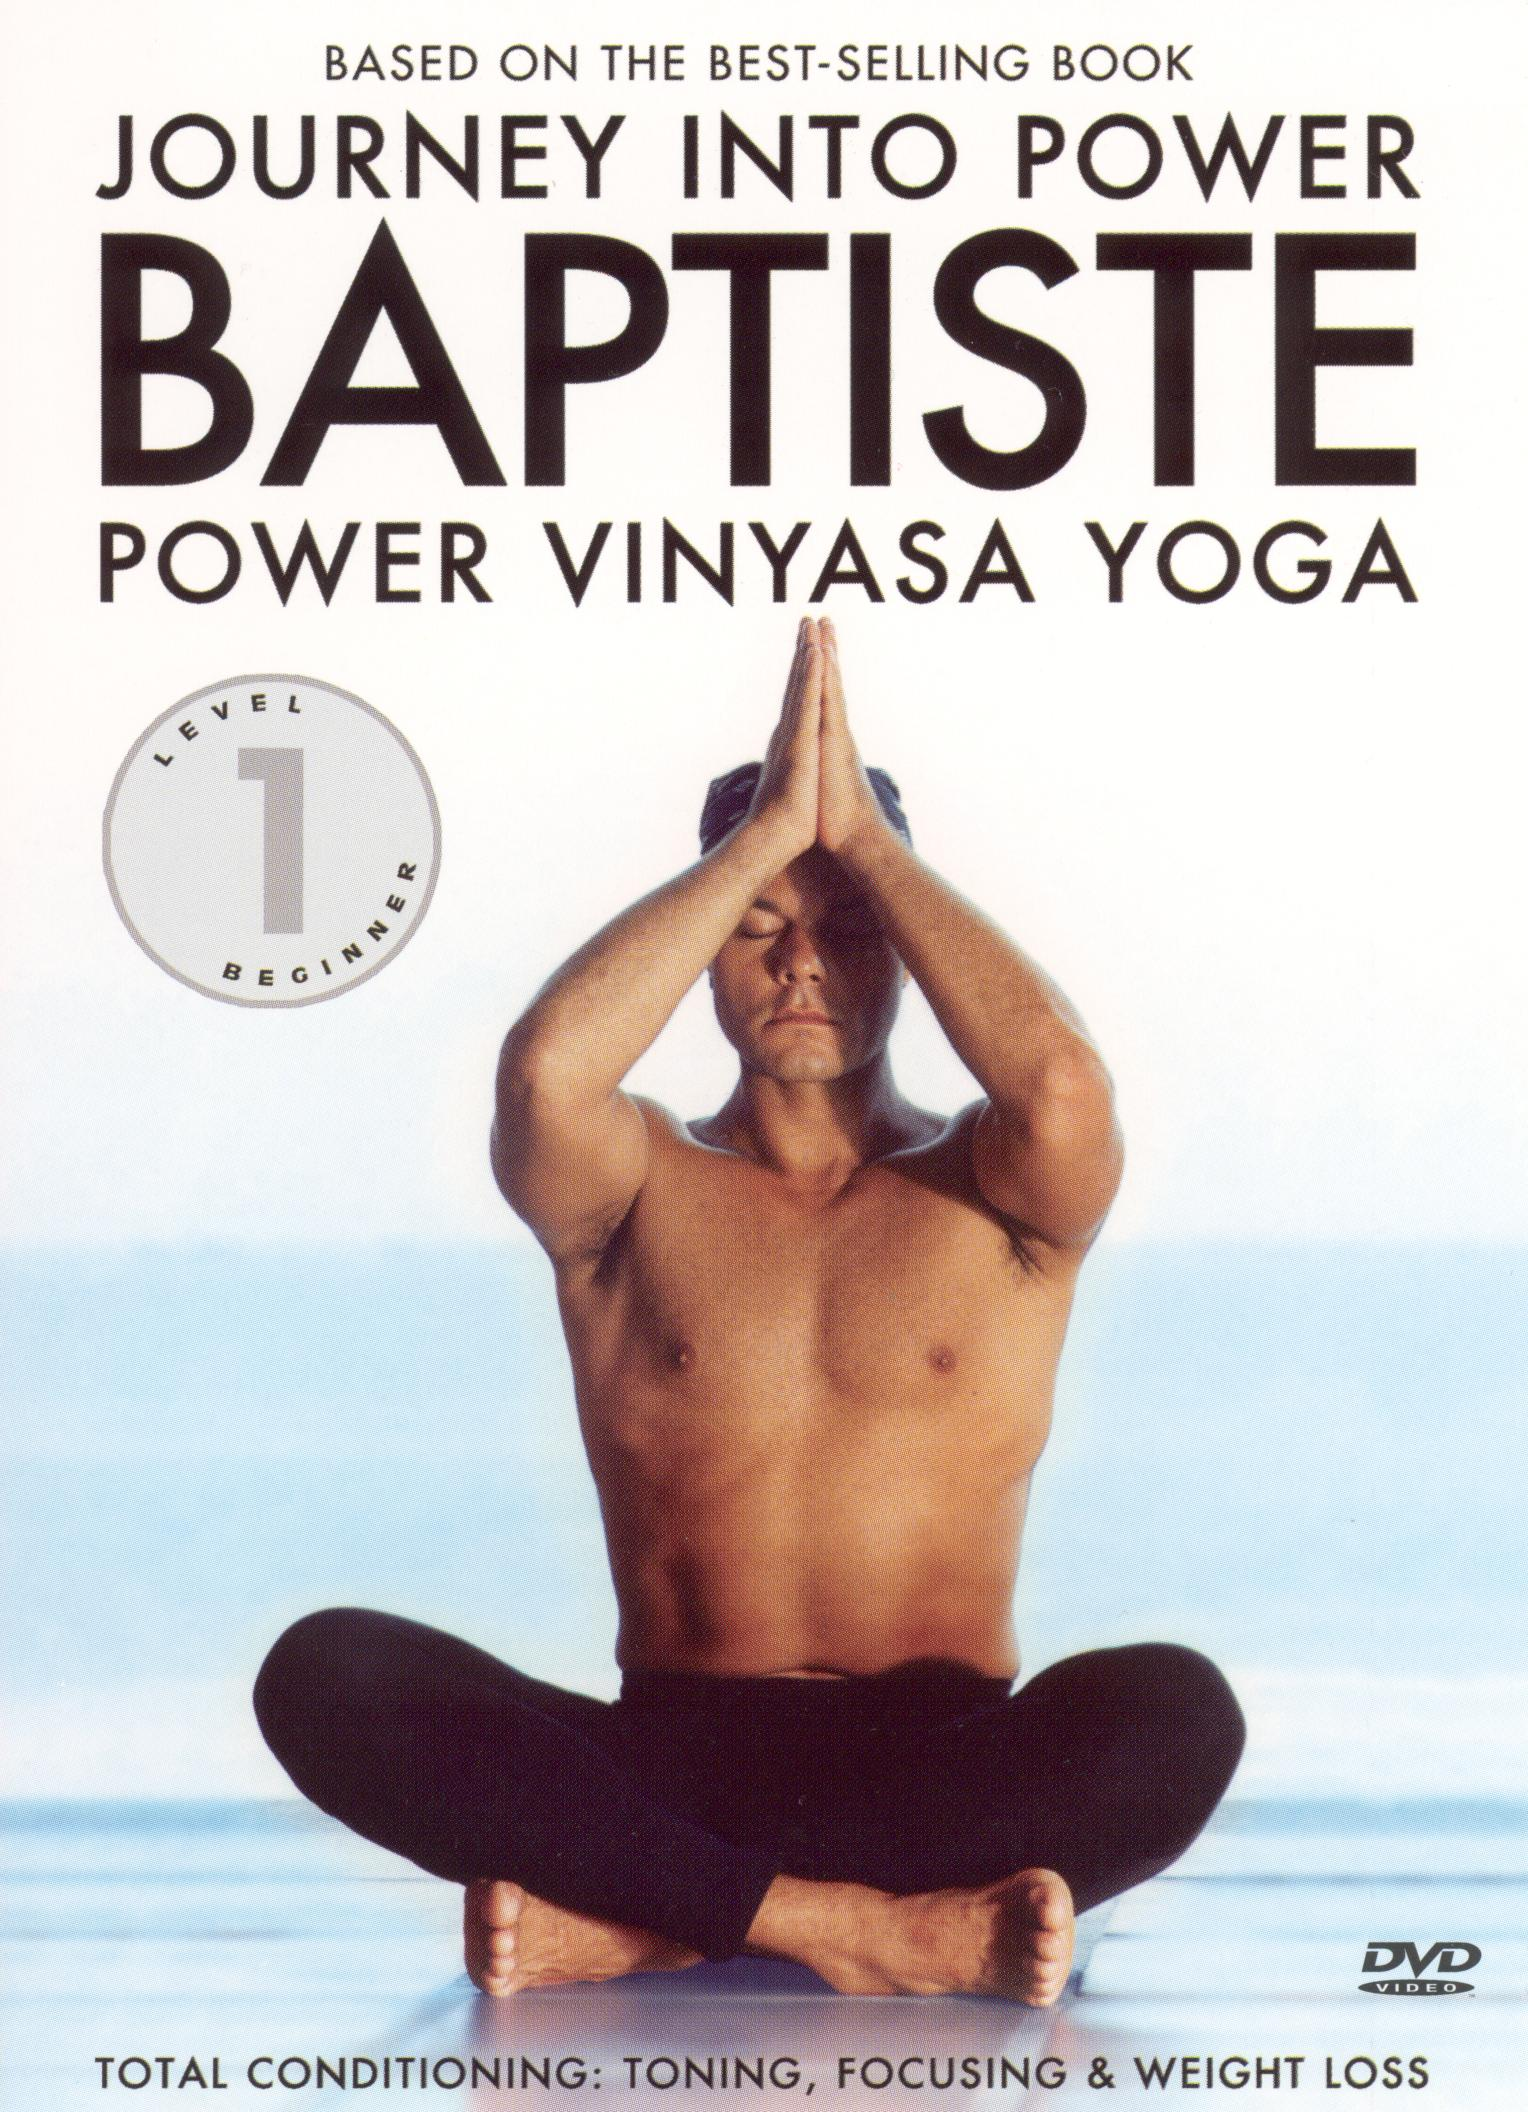 Baron Baptiste: Journey Into Power, Level 1 - Power Vinyasa Yoga